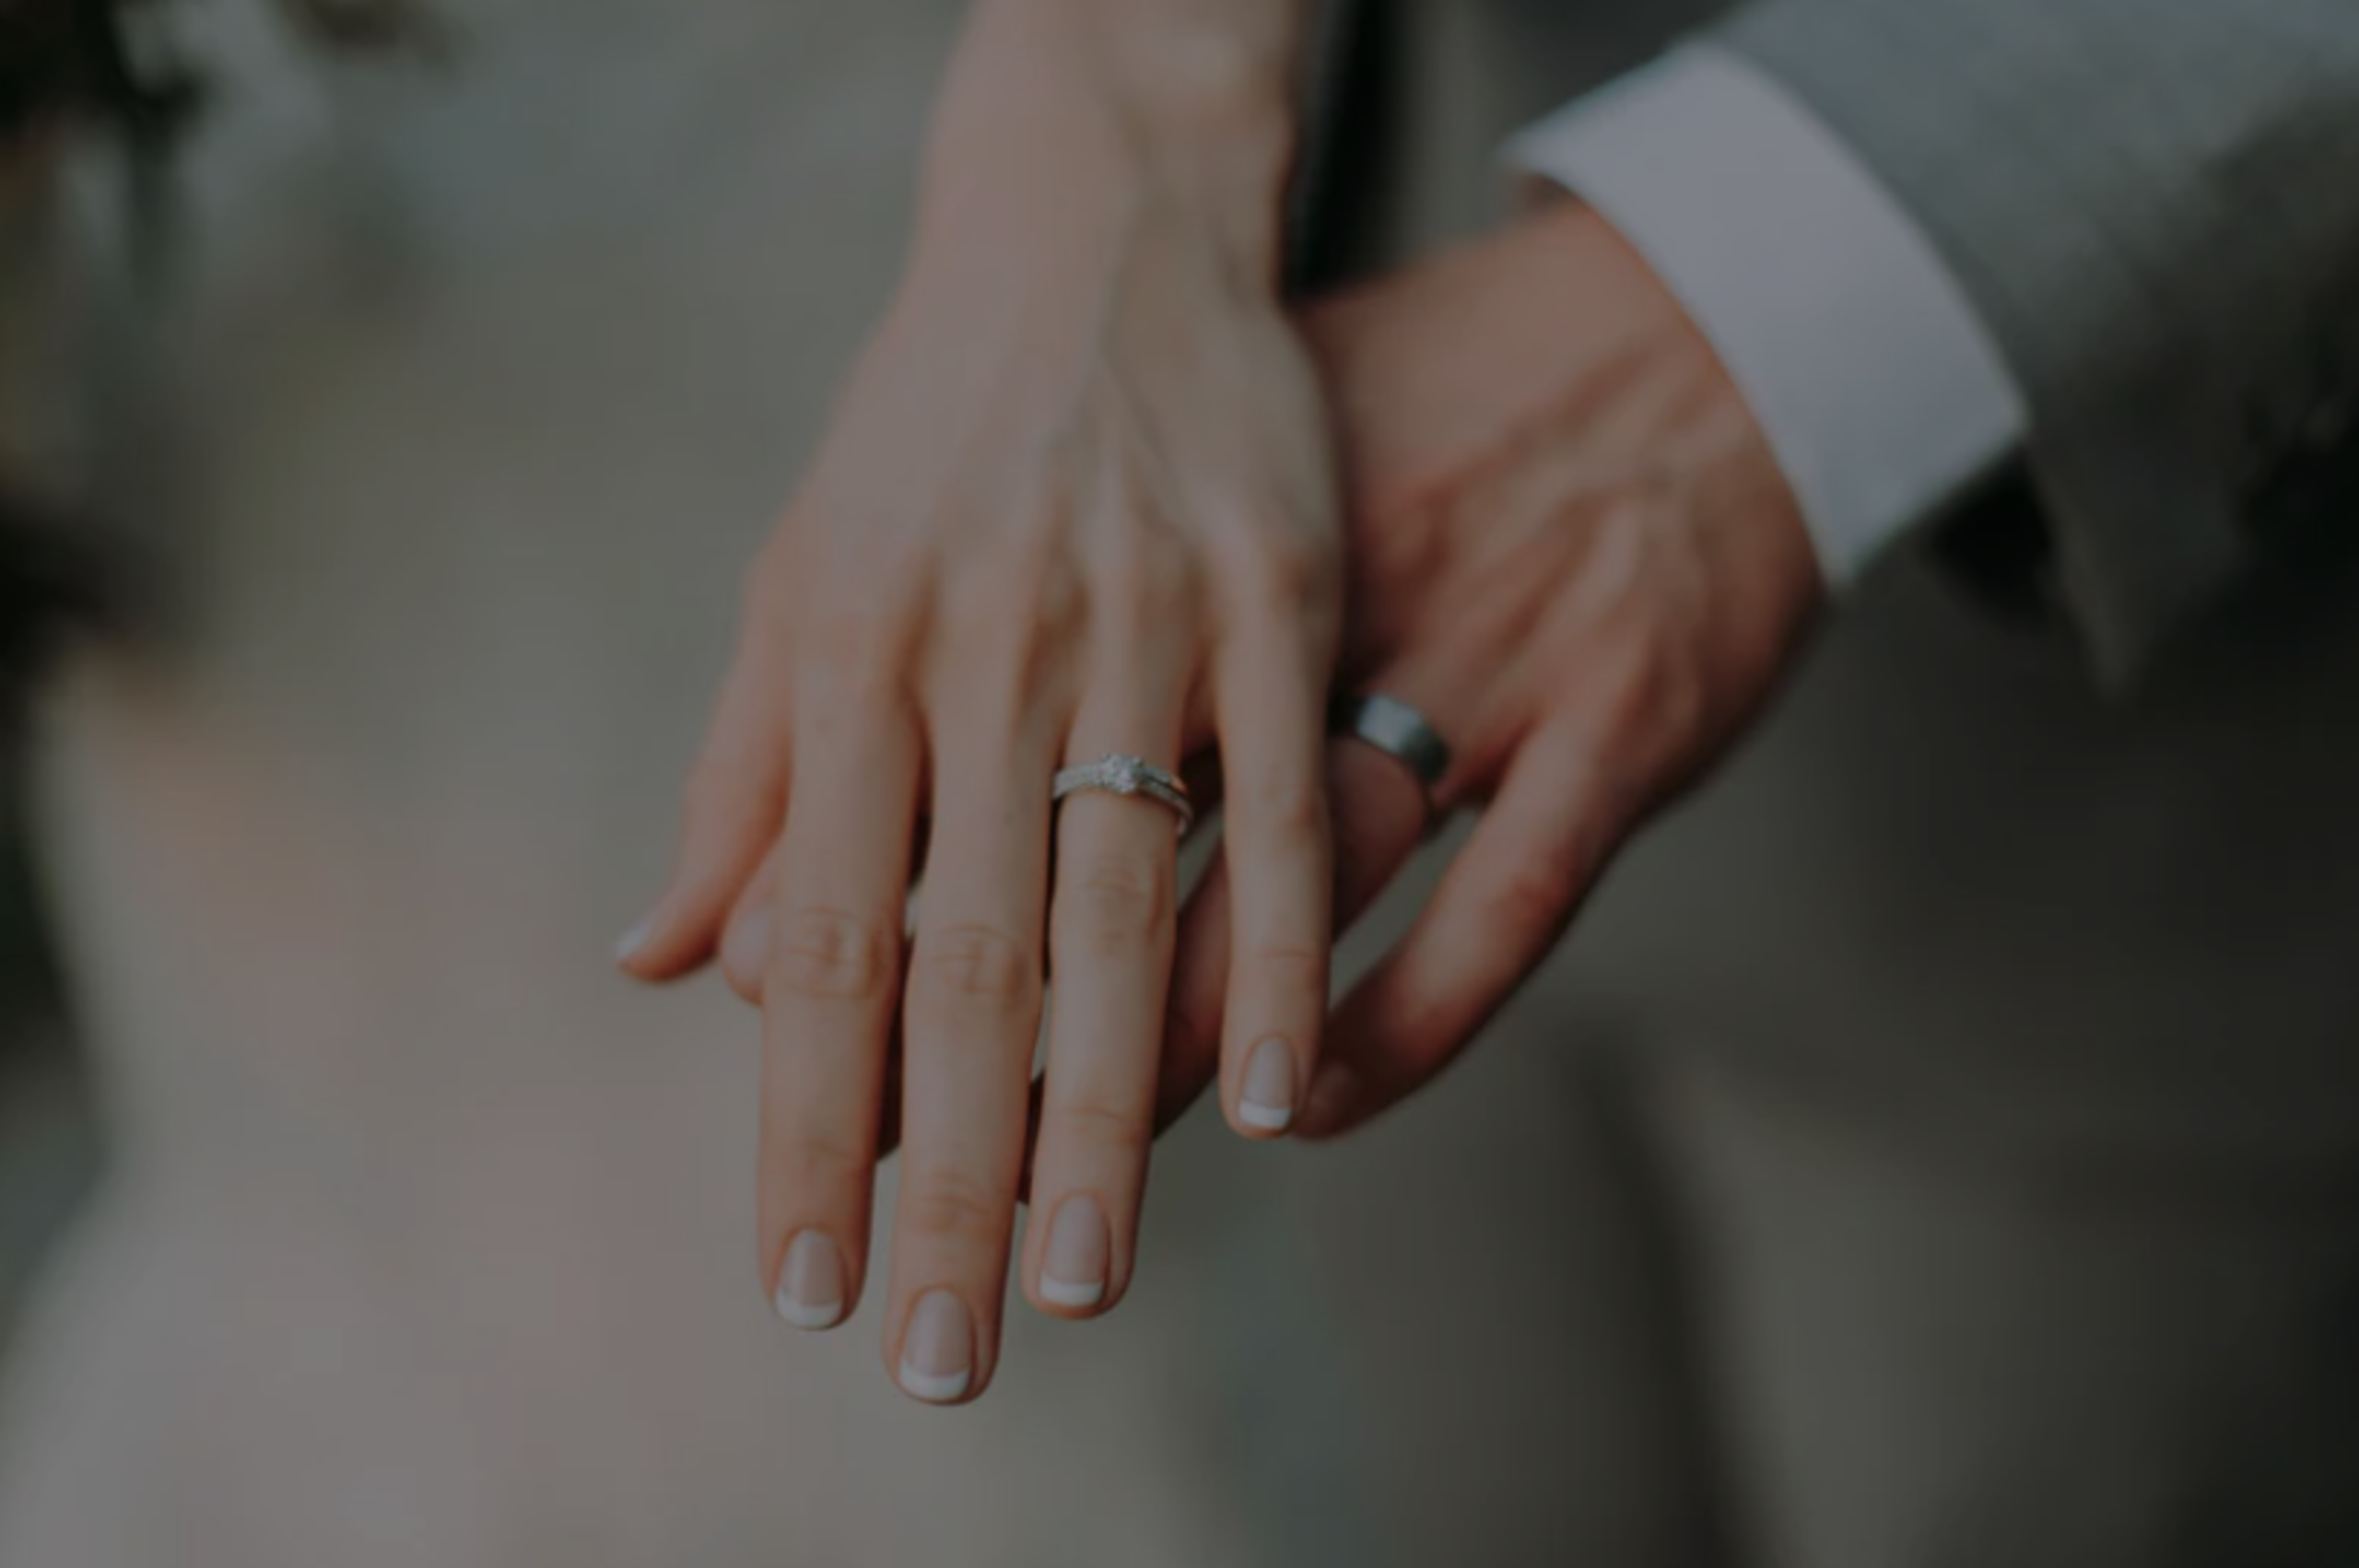 Buying Before Or After Marriage: What Should You Do?